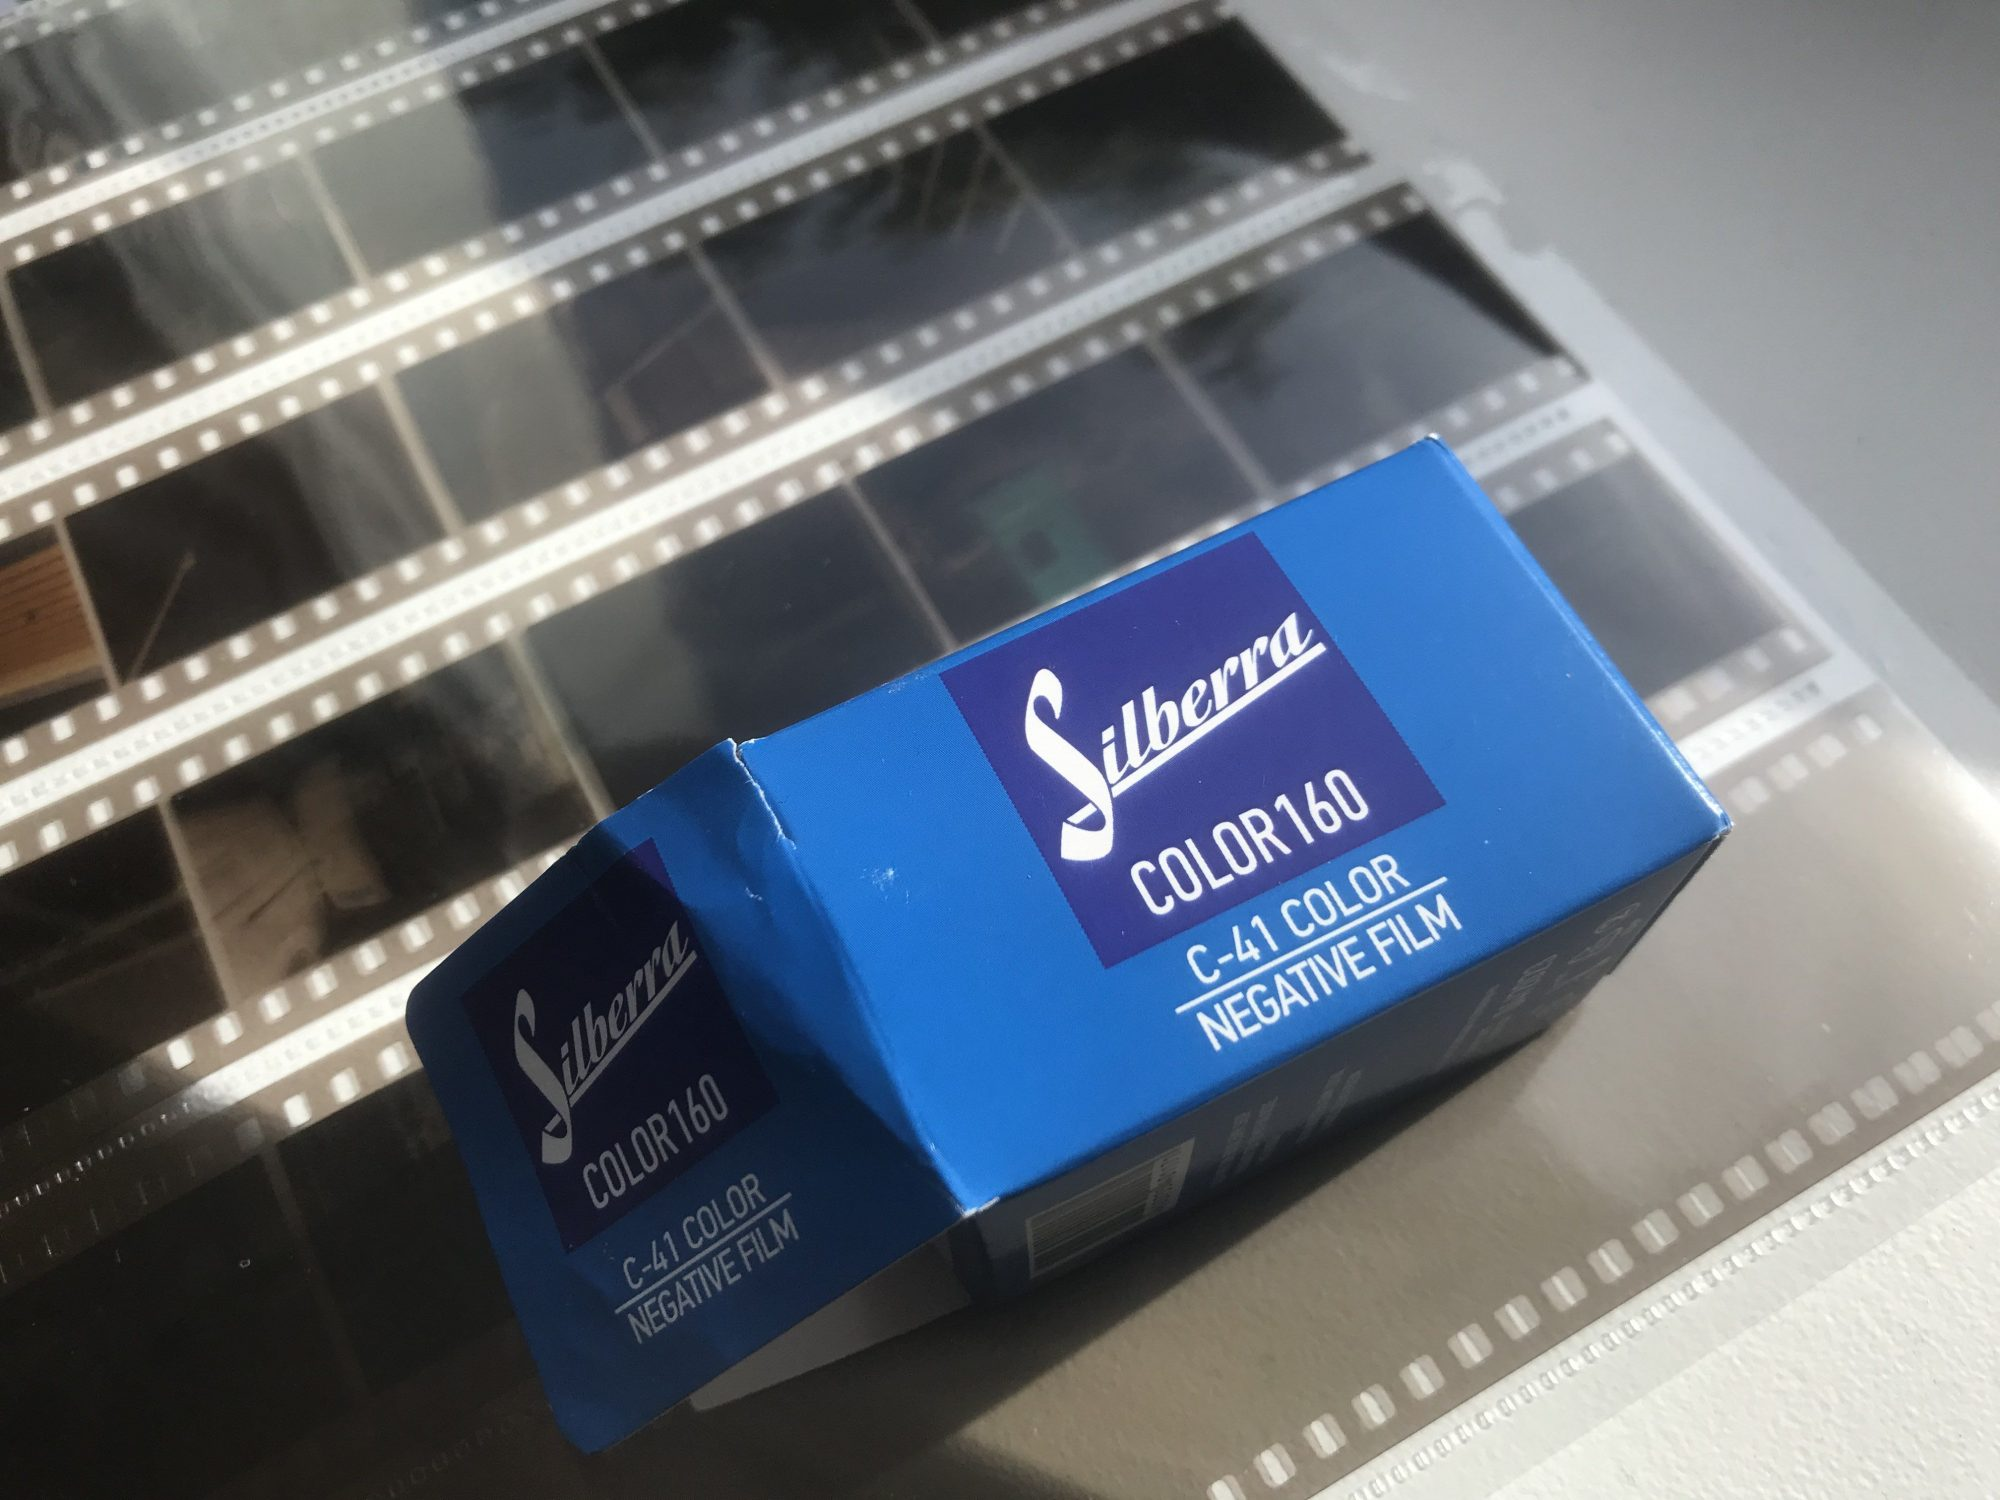 Silberra Color 160 film (Pic: Stephen Dowling)